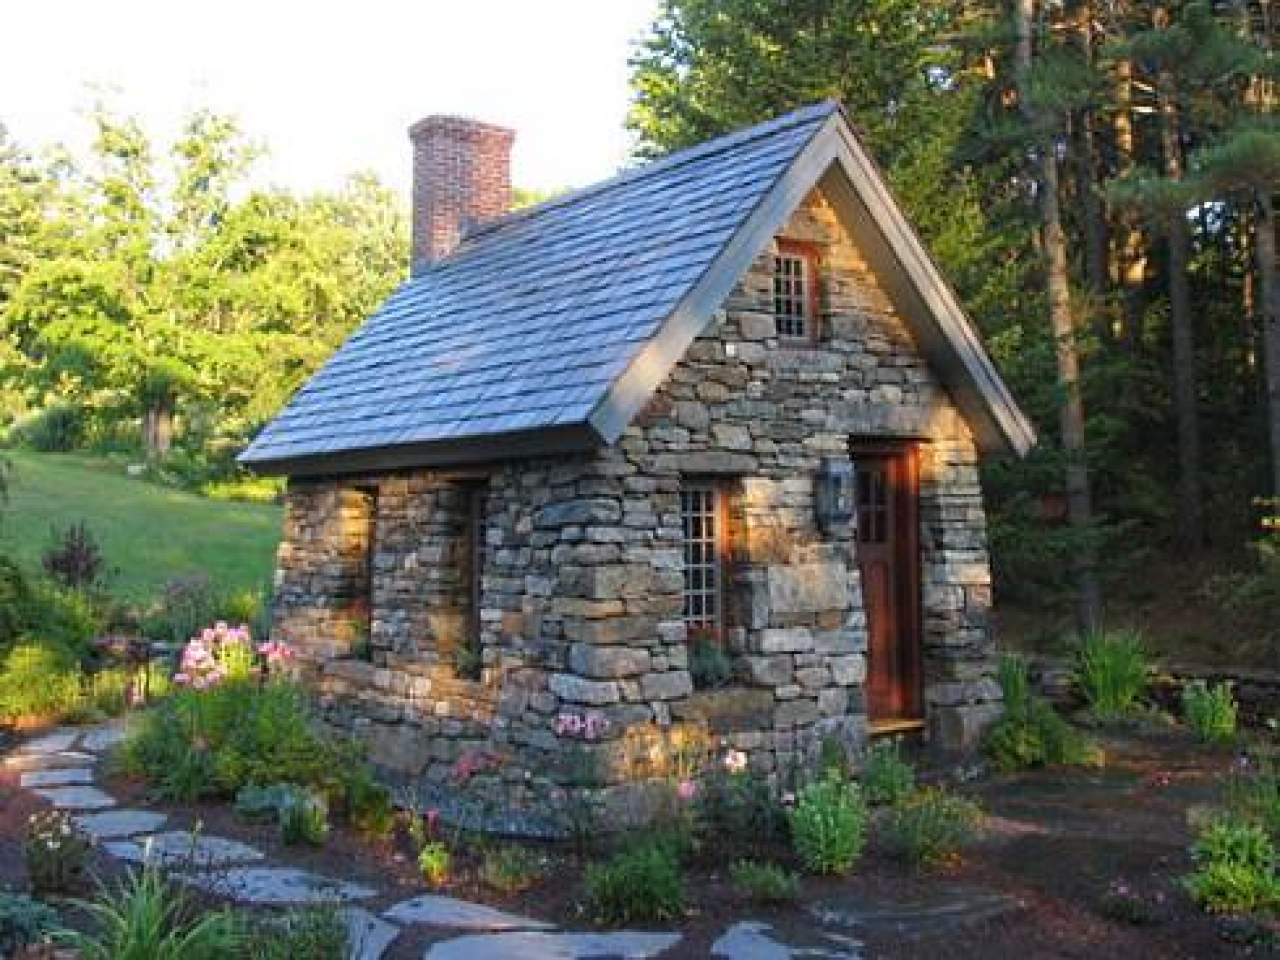 Stone Home Designs: Fairy Tale Cottage House Plans Small Stone Cottage Design